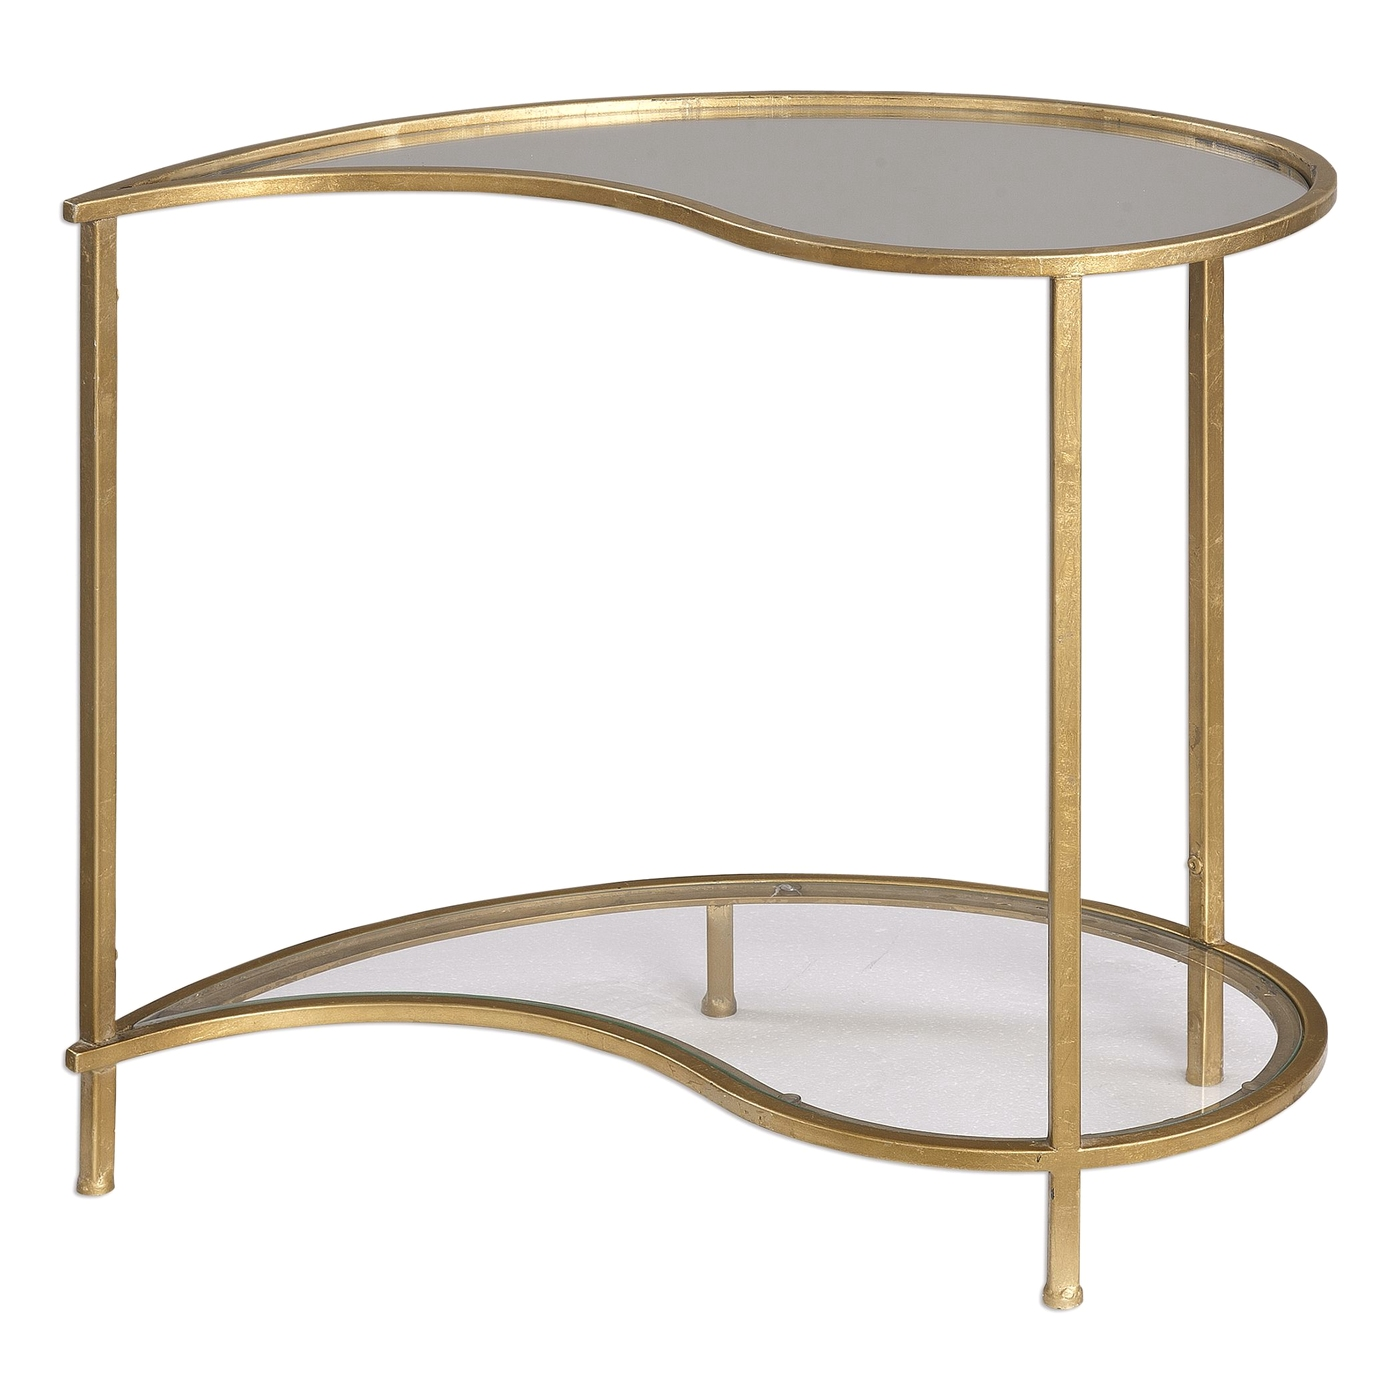 darcie teardrop gold finished iron side table with mirrored top and glass shelf. Black Bedroom Furniture Sets. Home Design Ideas